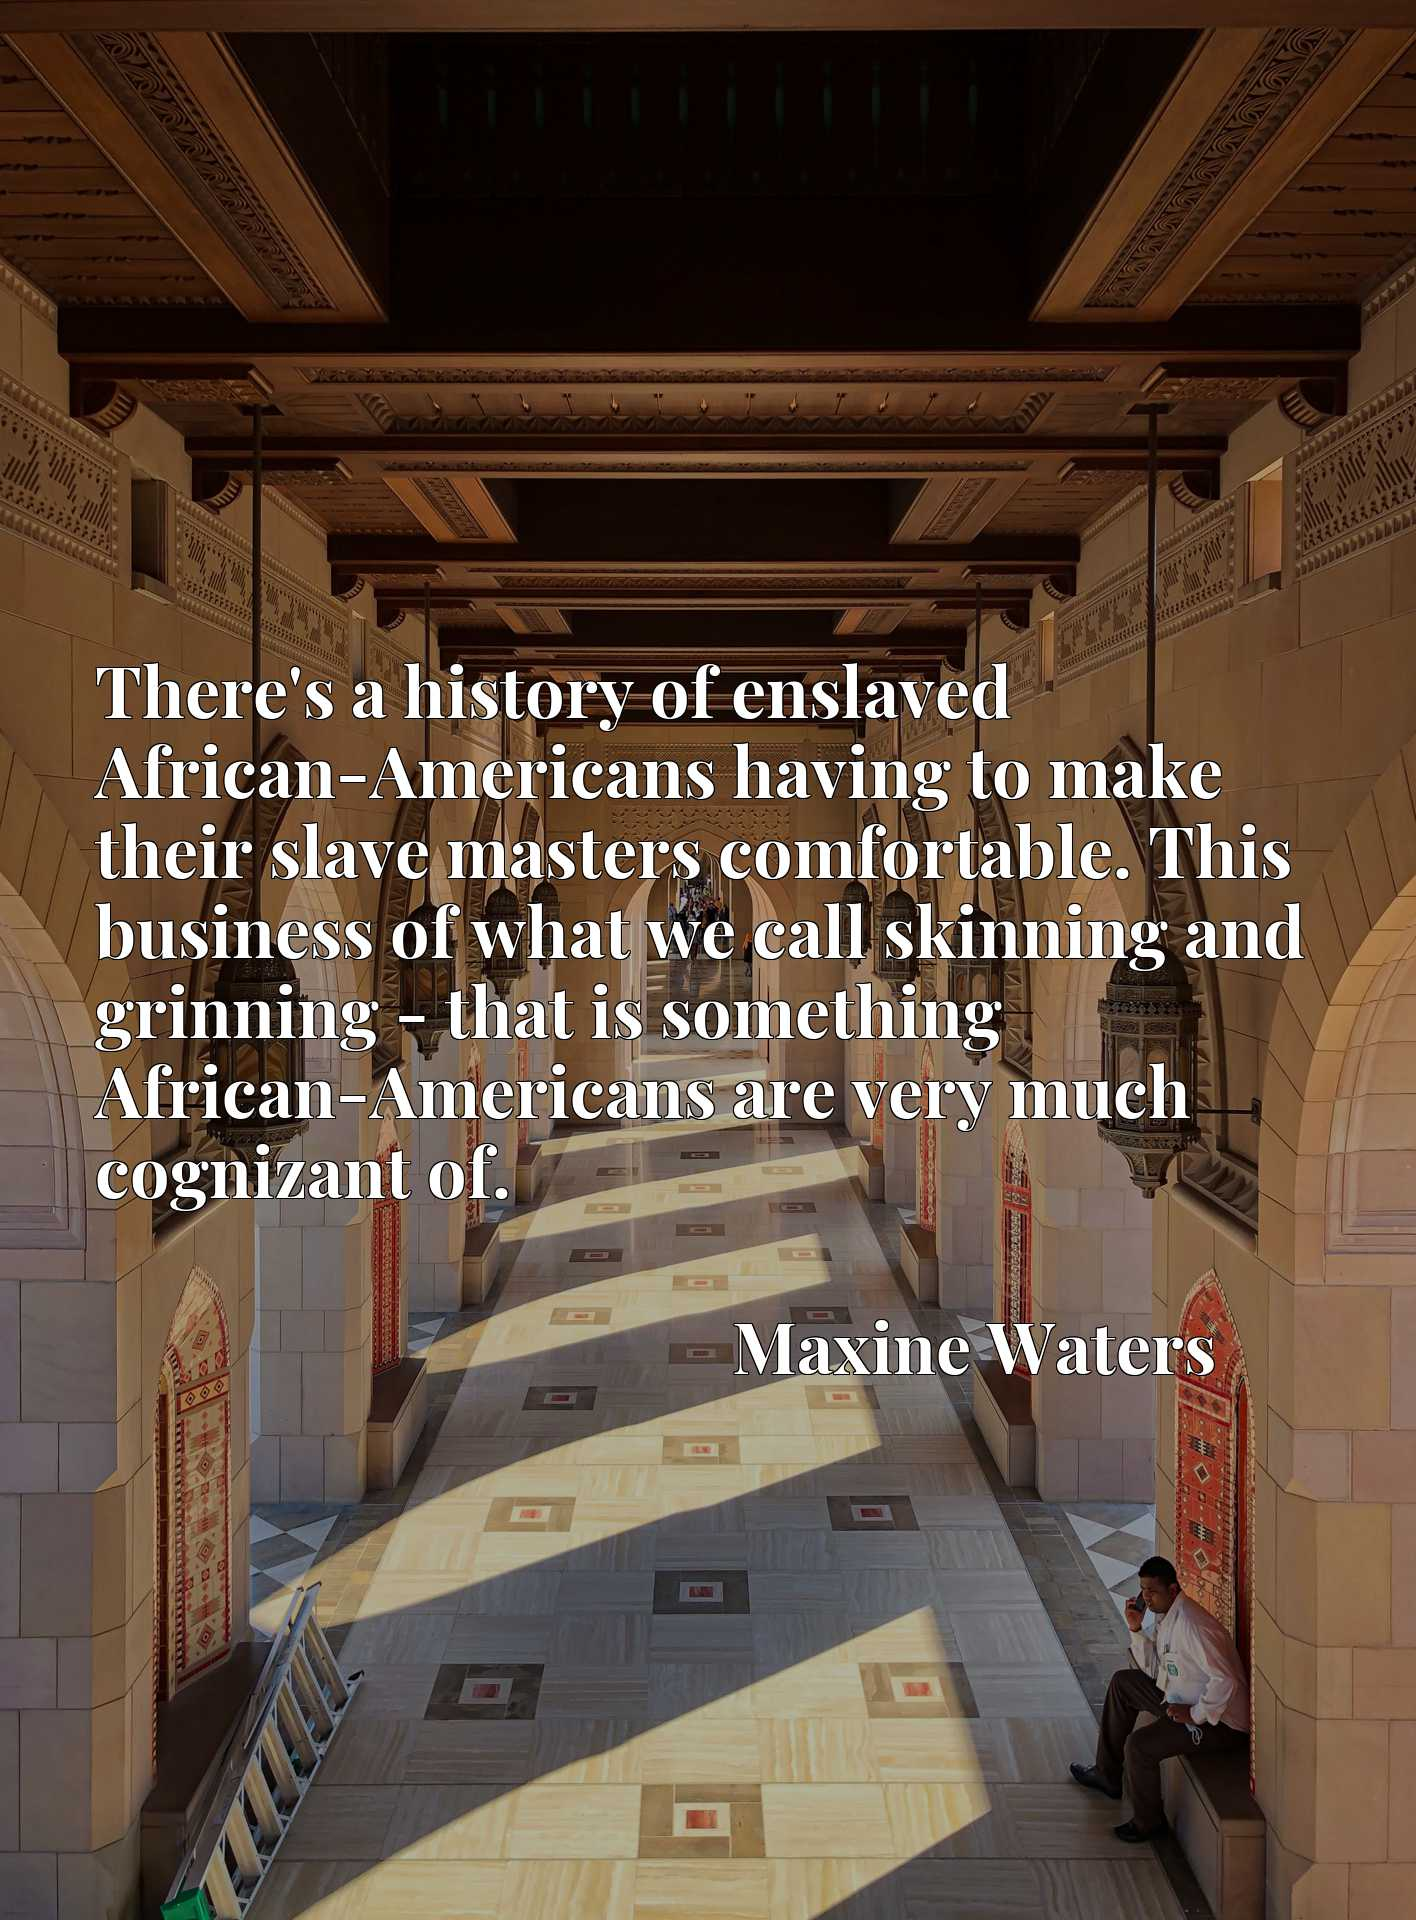 There's a history of enslaved African-Americans having to make their slave masters comfortable. This business of what we call skinning and grinning - that is something African-Americans are very much cognizant of.